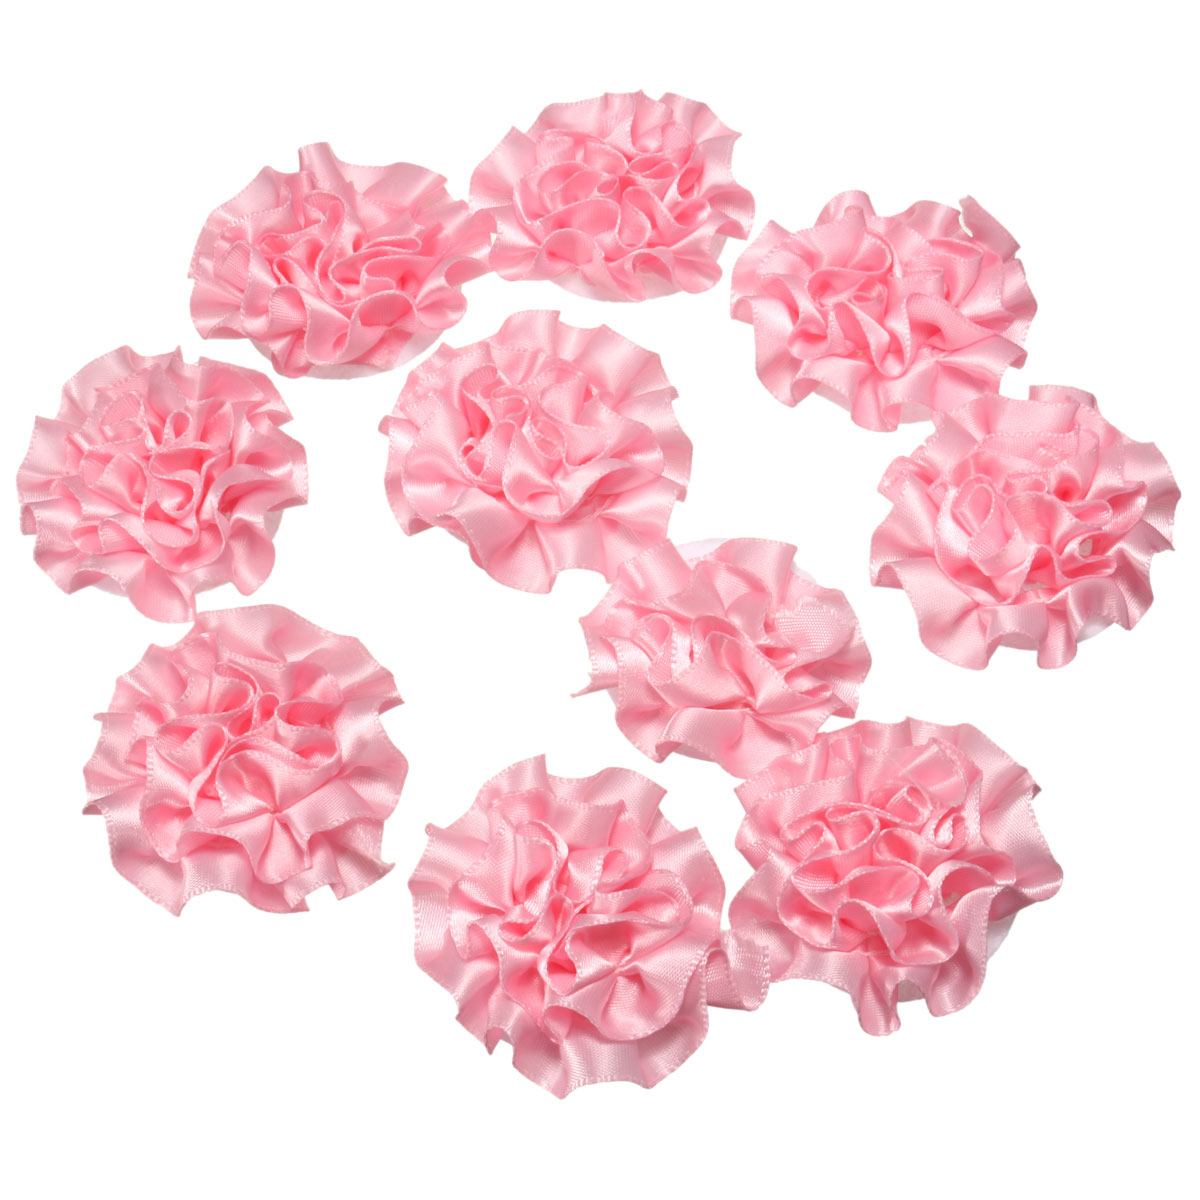 1PCS Ribbon Flowers Bows Carnation Appliques Craft Sewing Candy Box Wedding Decoration